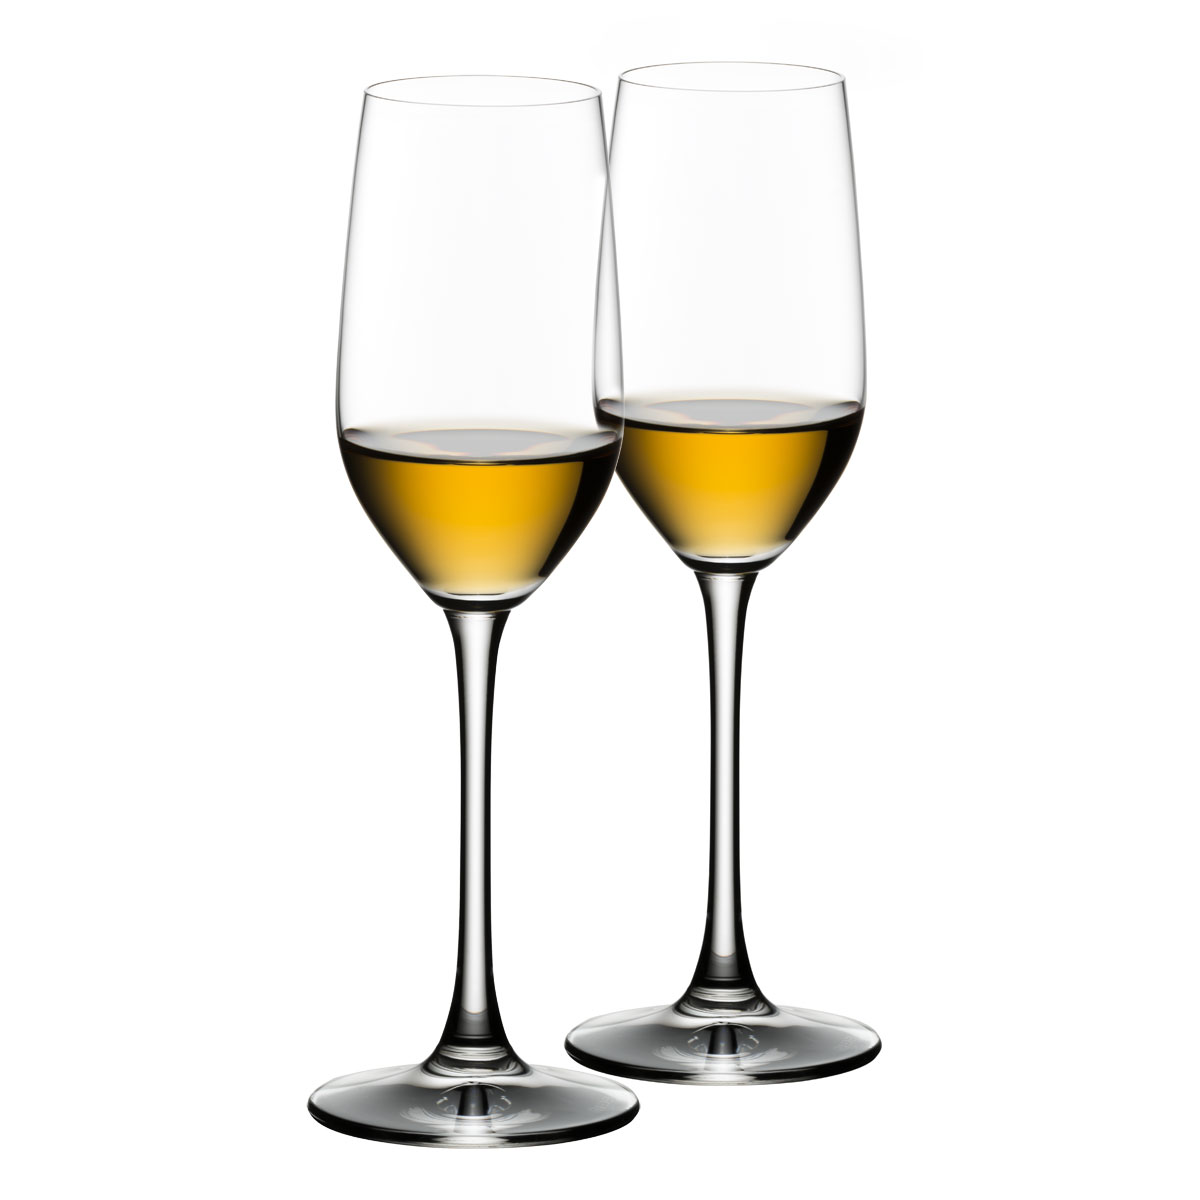 Riedel Ouverture, Tequila Glasses, Pair